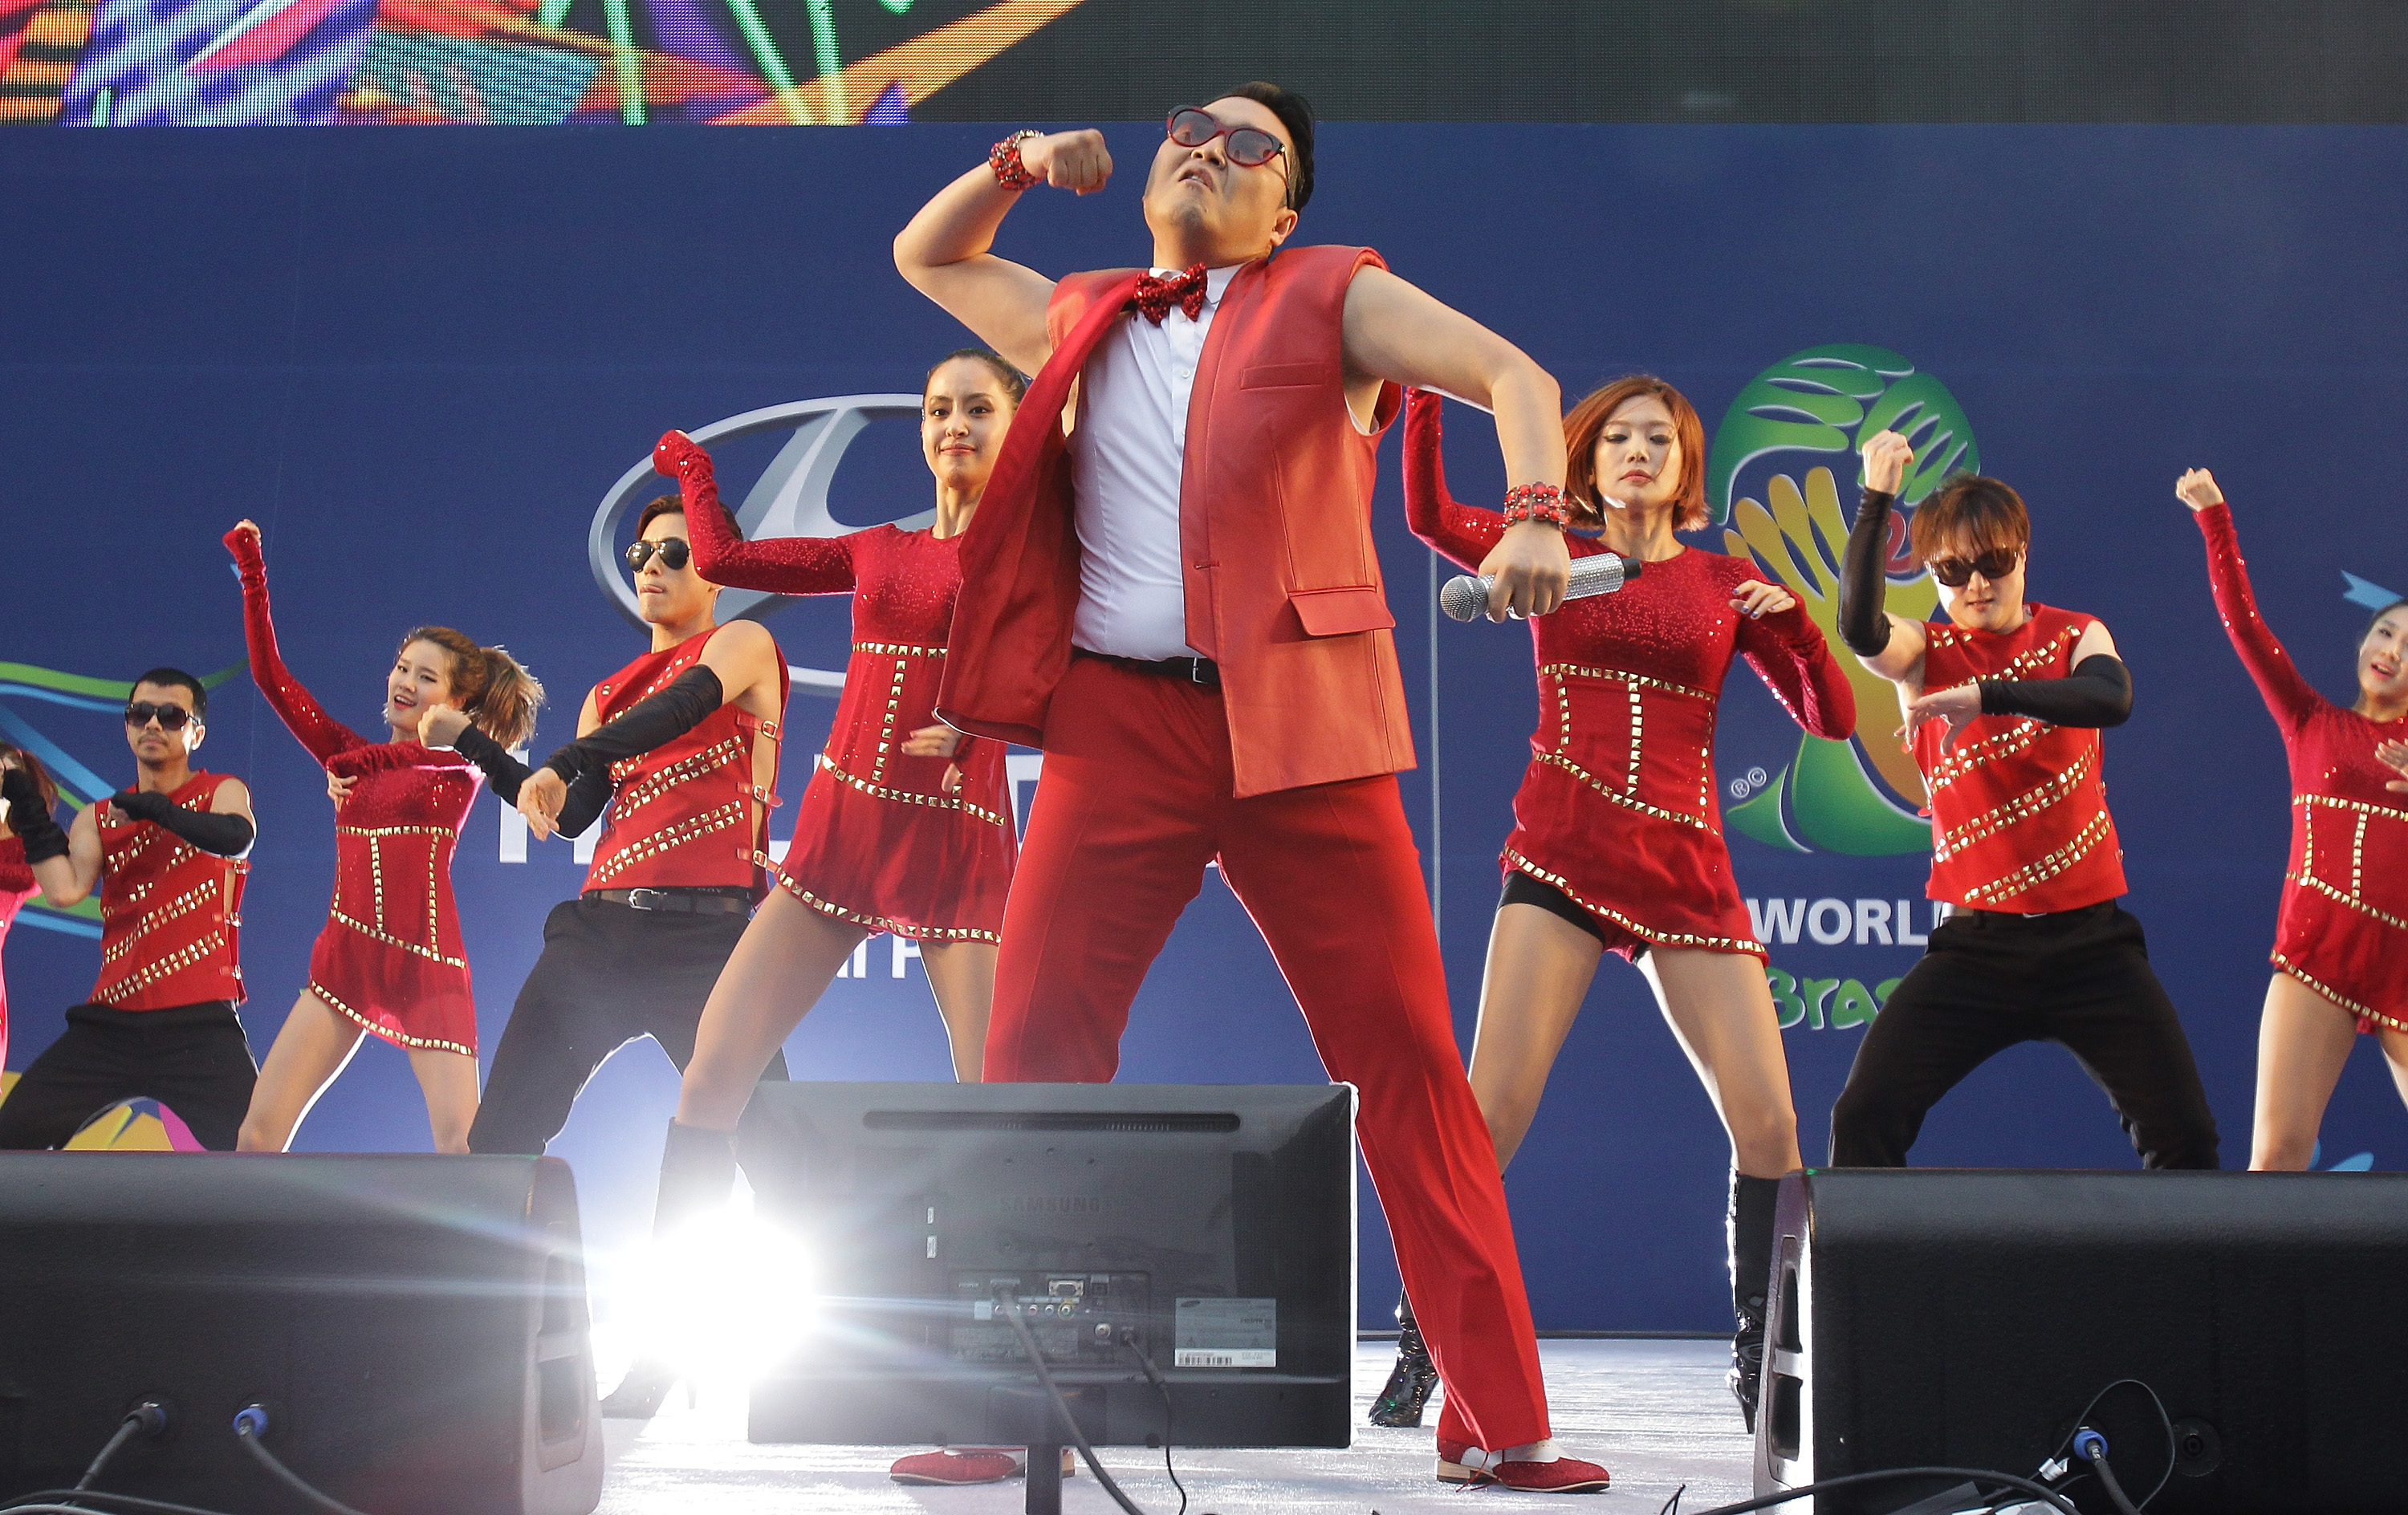 Psy performs - South Korea v Russia - 2014 FIFA World Cup